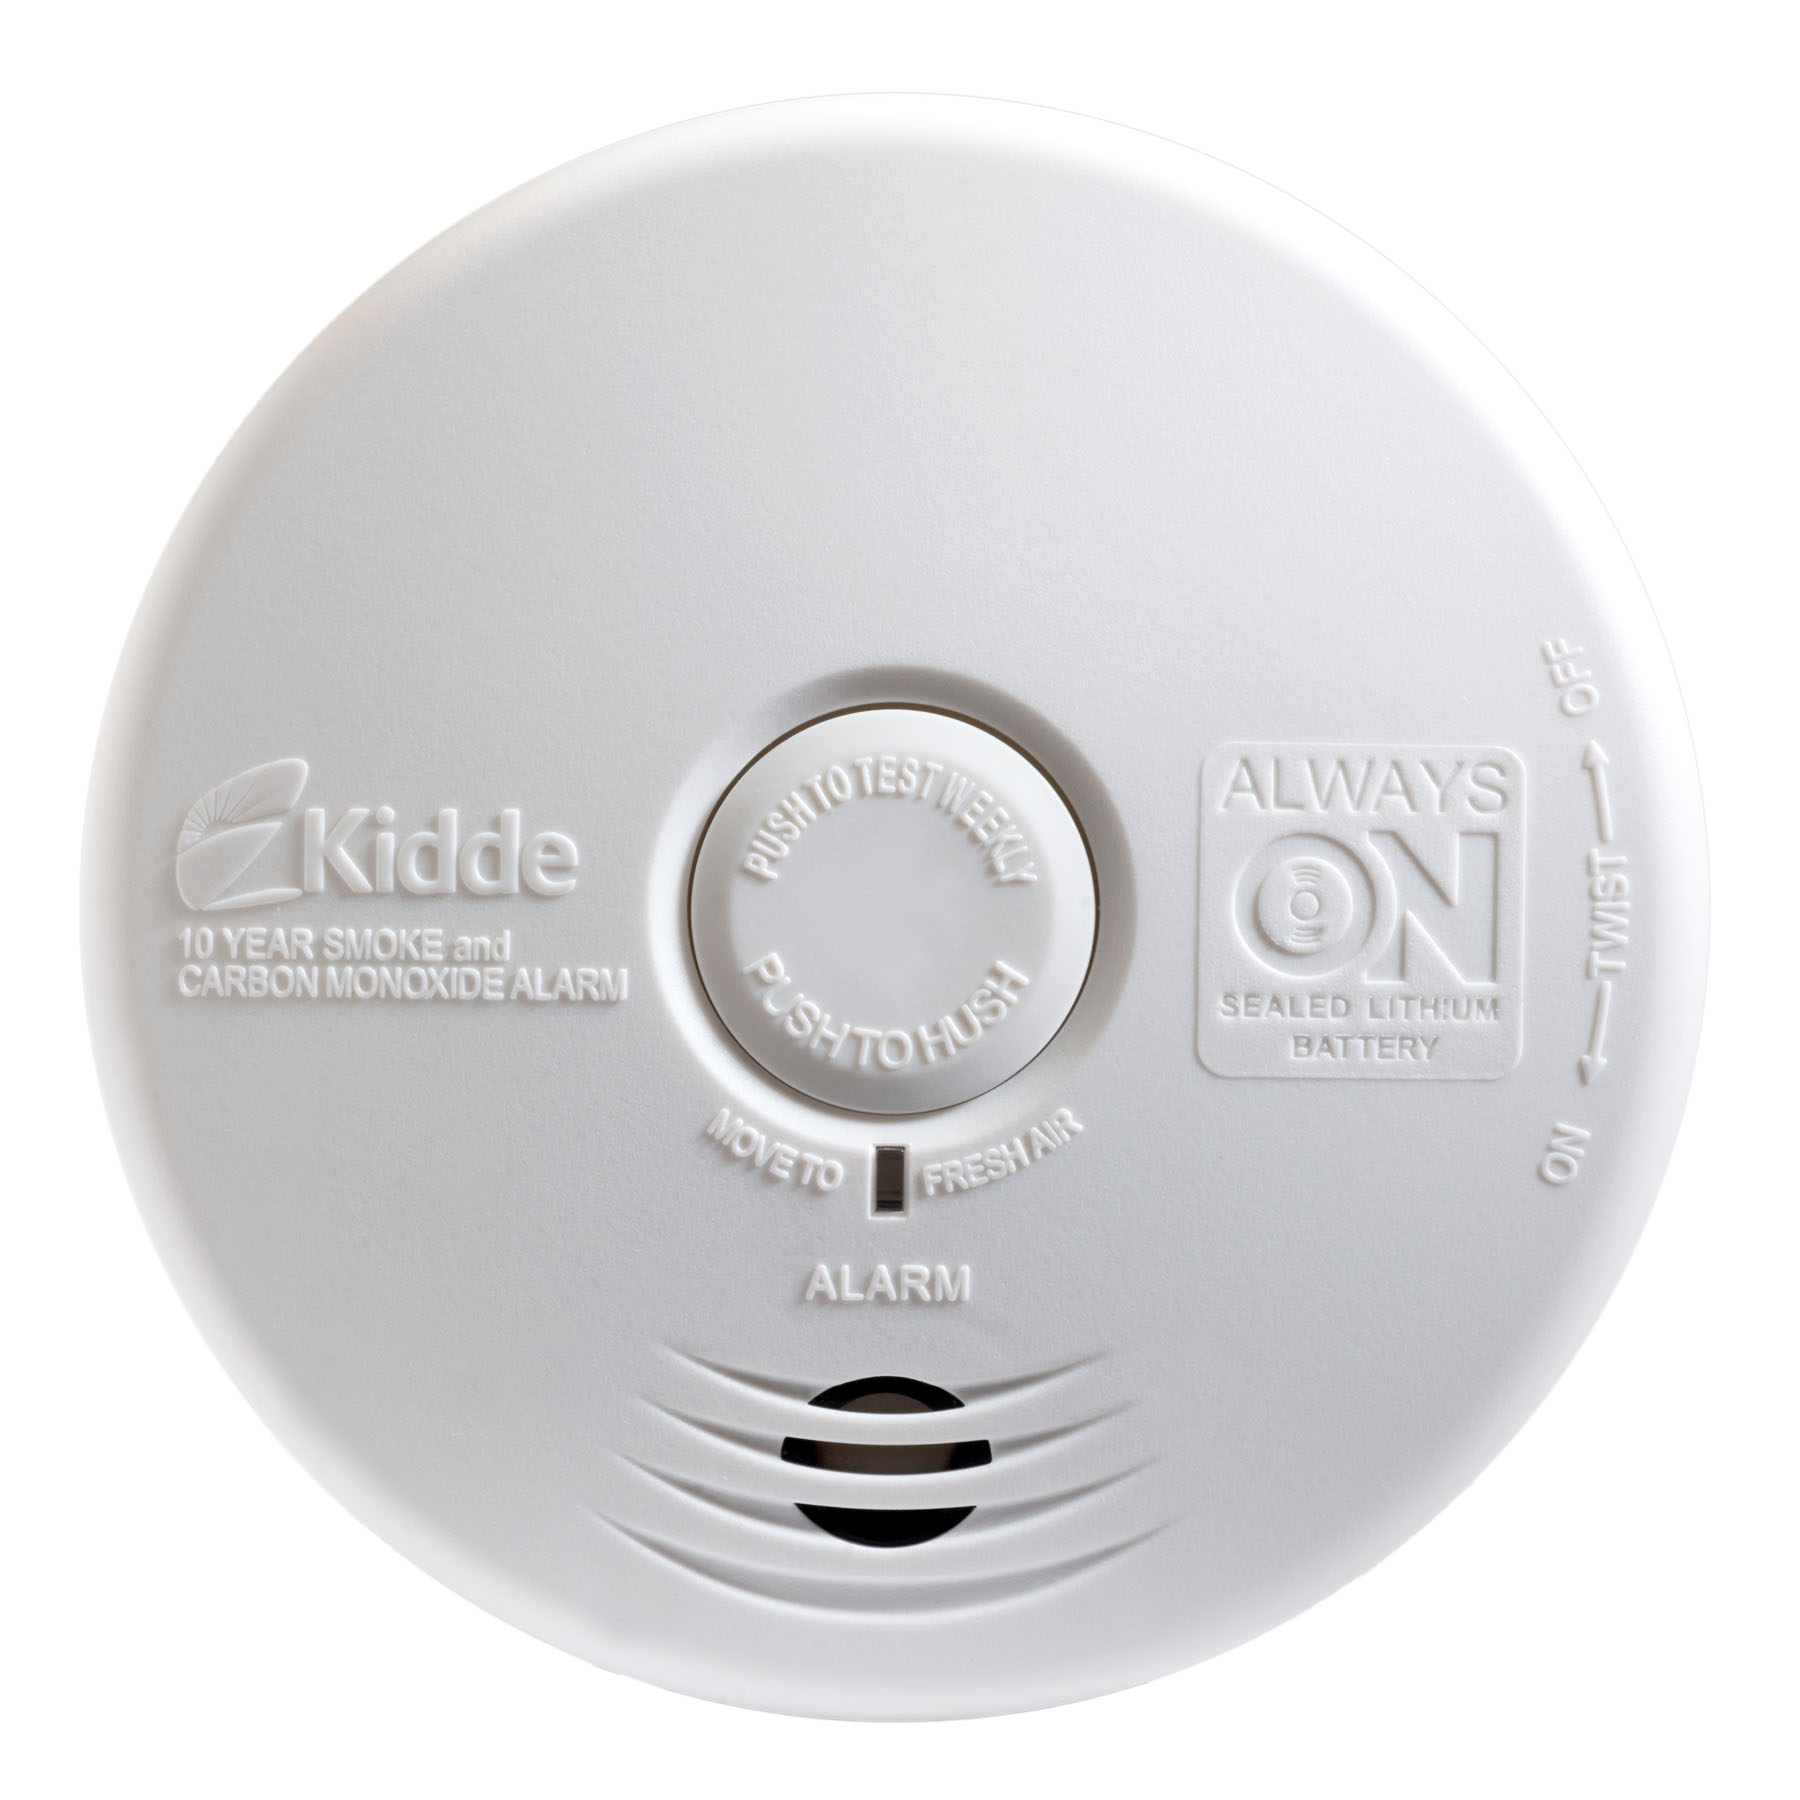 Smoke Alarms made by Kidde, a UTC fire and security company. These new and improved alarms come with a ten year warranty.